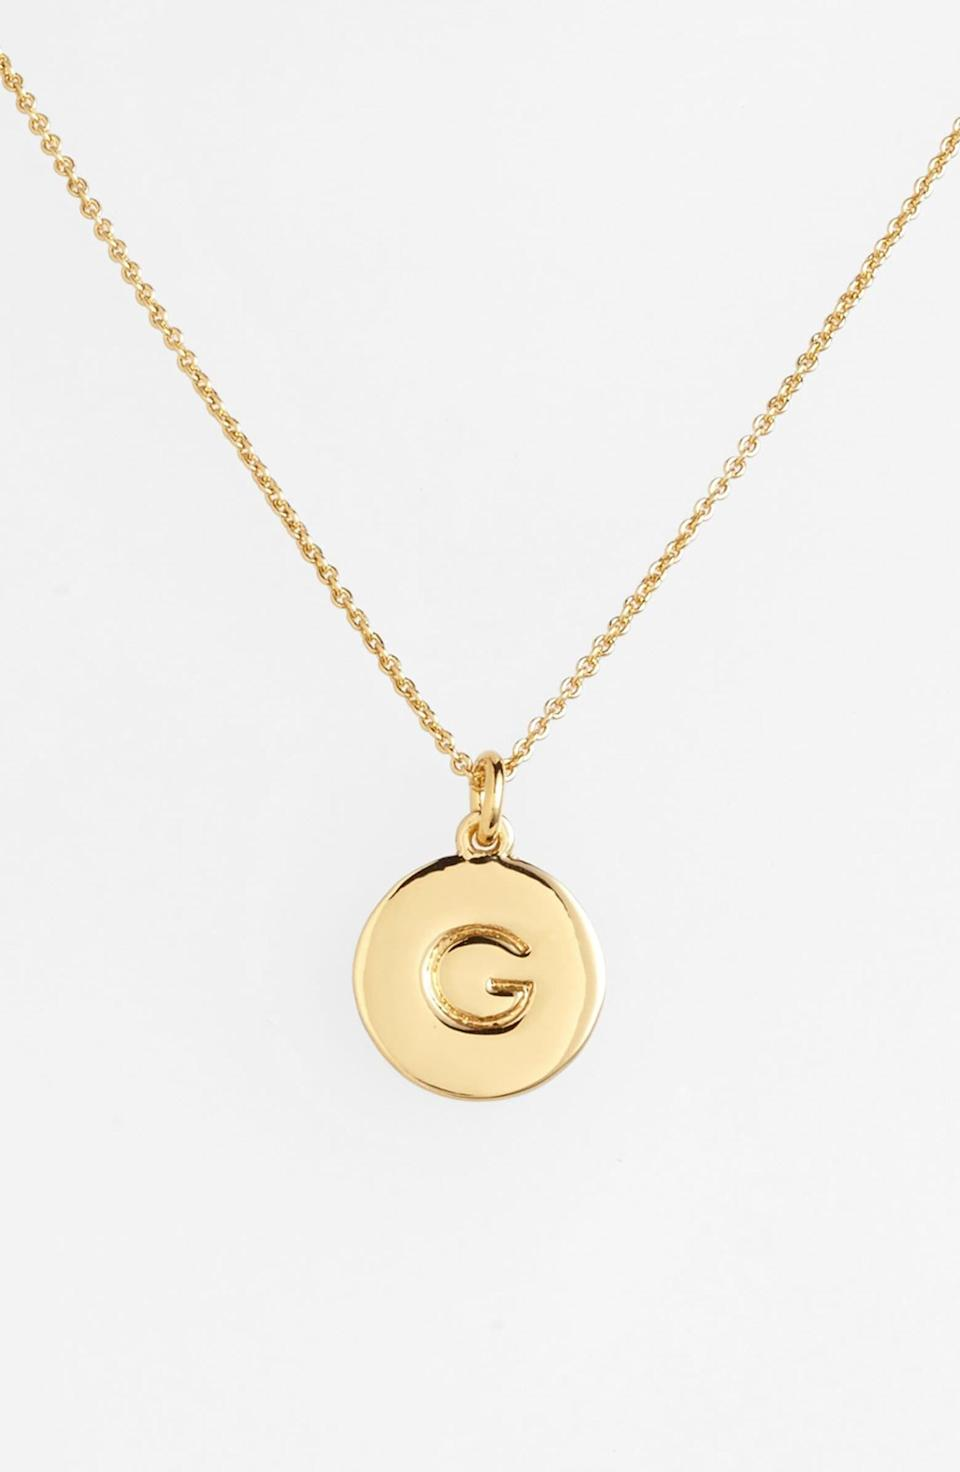 """<br> <br> <strong>Kate Spade</strong> One In A Million Initial Pendant Necklace, $, available at <a href=""""https://go.skimresources.com/?id=30283X879131&url=https%3A%2F%2Fshop.nordstrom.com%2Fs%2Fkate-spade-new-york-one-in-a-million-initial-pendant-necklace%2F3628637"""" rel=""""nofollow noopener"""" target=""""_blank"""" data-ylk=""""slk:Nordstrom"""" class=""""link rapid-noclick-resp"""">Nordstrom</a>"""